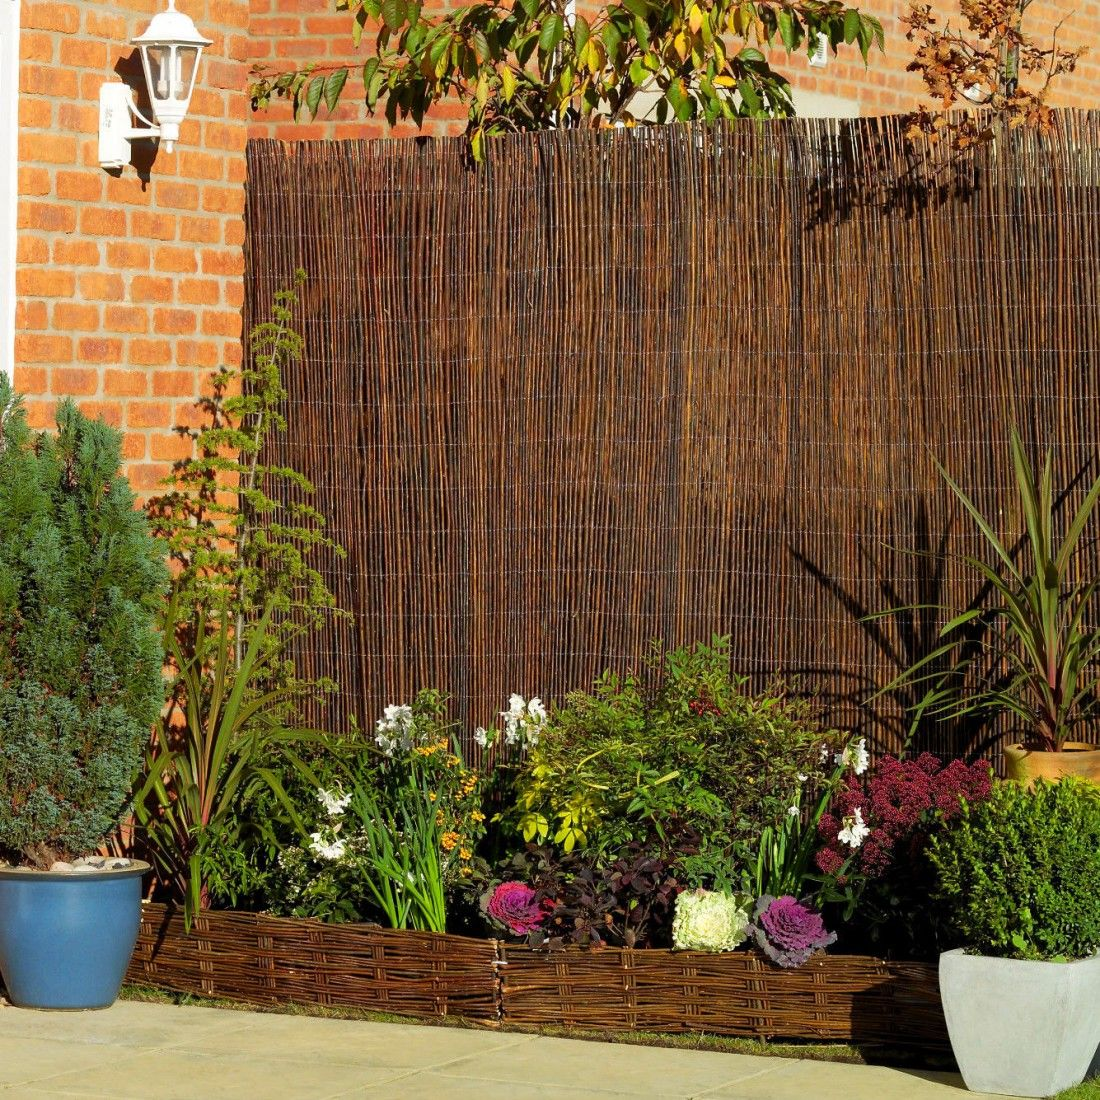 Premium Air Dried Willow Natural Wood Fence Privacy Screening 3m x